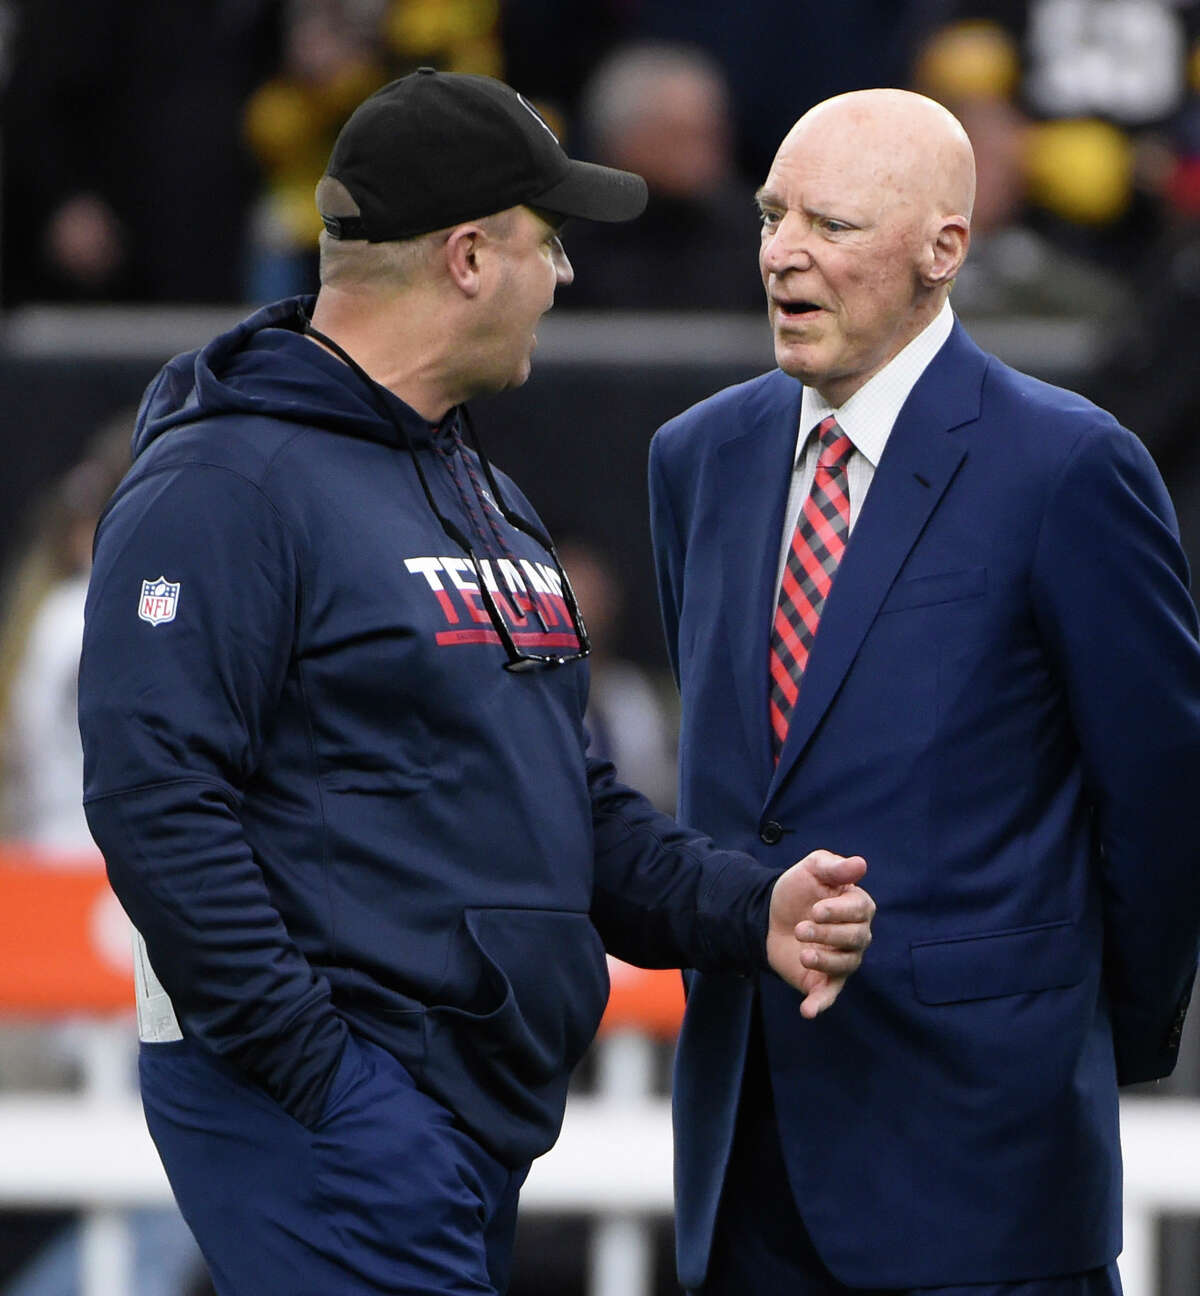 Houston Texans coach Bill O'Brien, left, talks with owner Bob McNair before an NFL football game against the Pittsburgh Steelers Monday, Dec. 25, 2017, in Houston. (AP Photo/Eric Christian Smith)